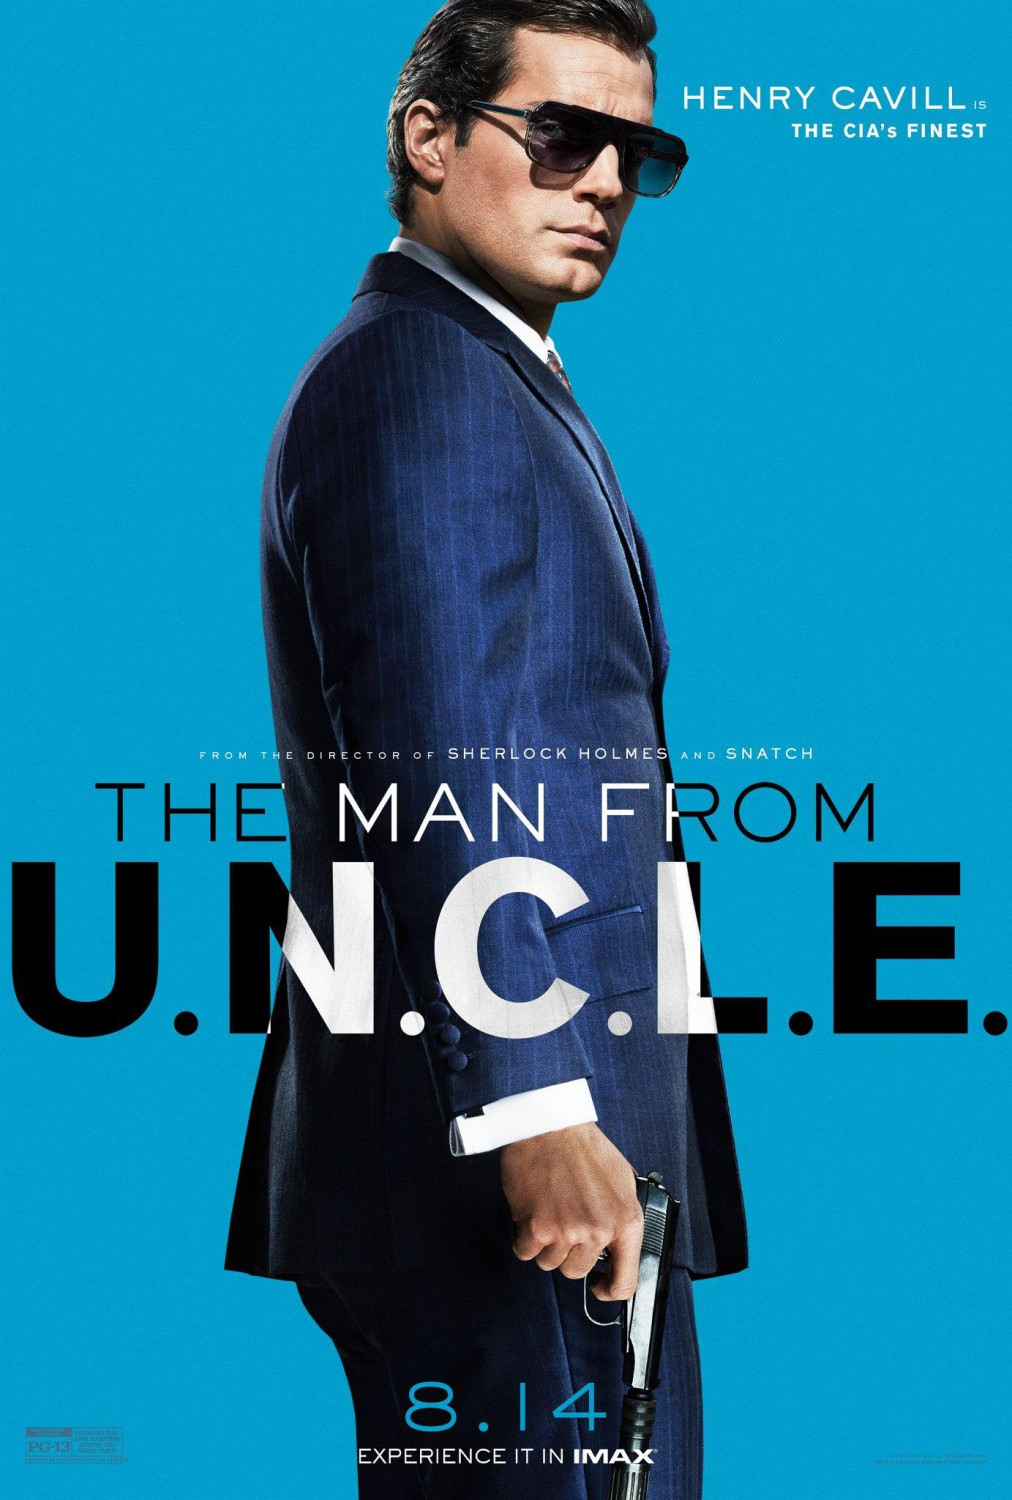 Double O Section First Man From UNCLE Character Poster 1012x1500